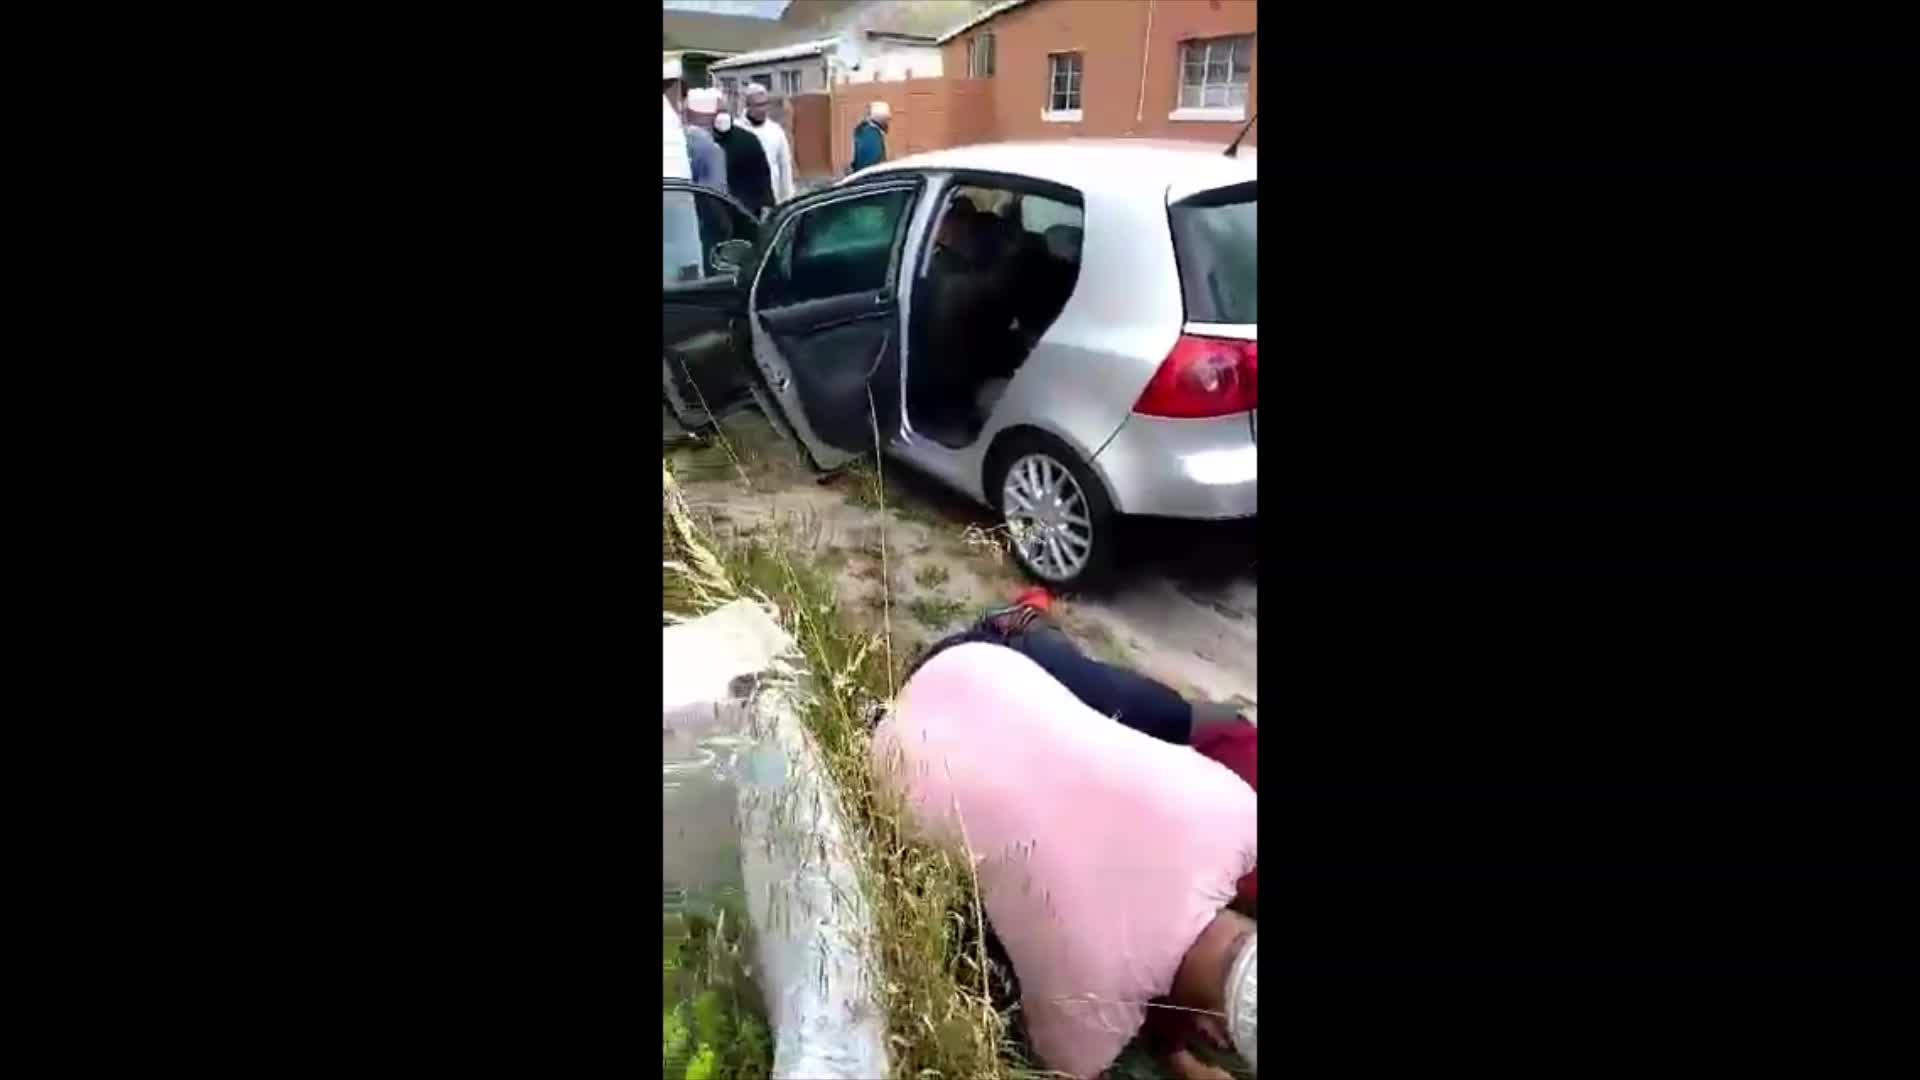 Cape Town gangsters do the world a favour and take each other out